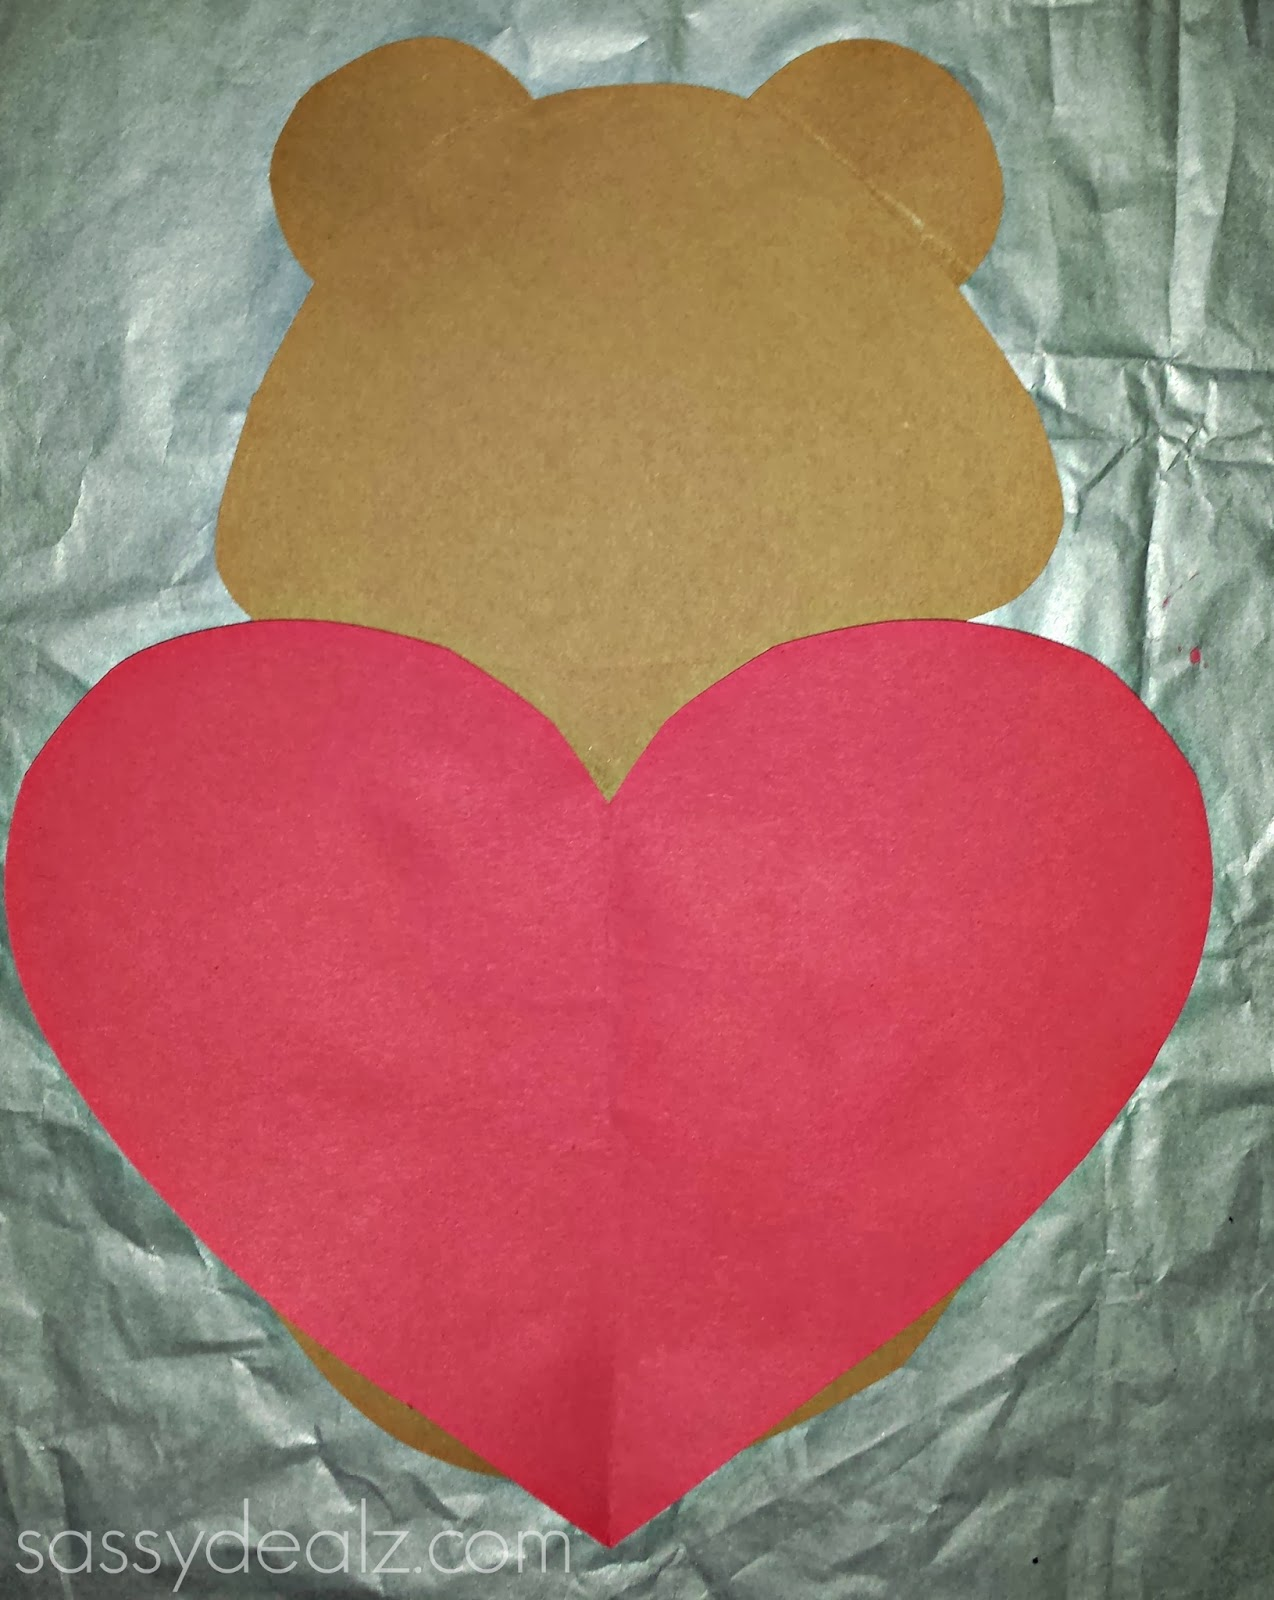 I love you beary much valentine bear craft for kids crafty morning bear valentine craft for kids jeuxipadfo Images